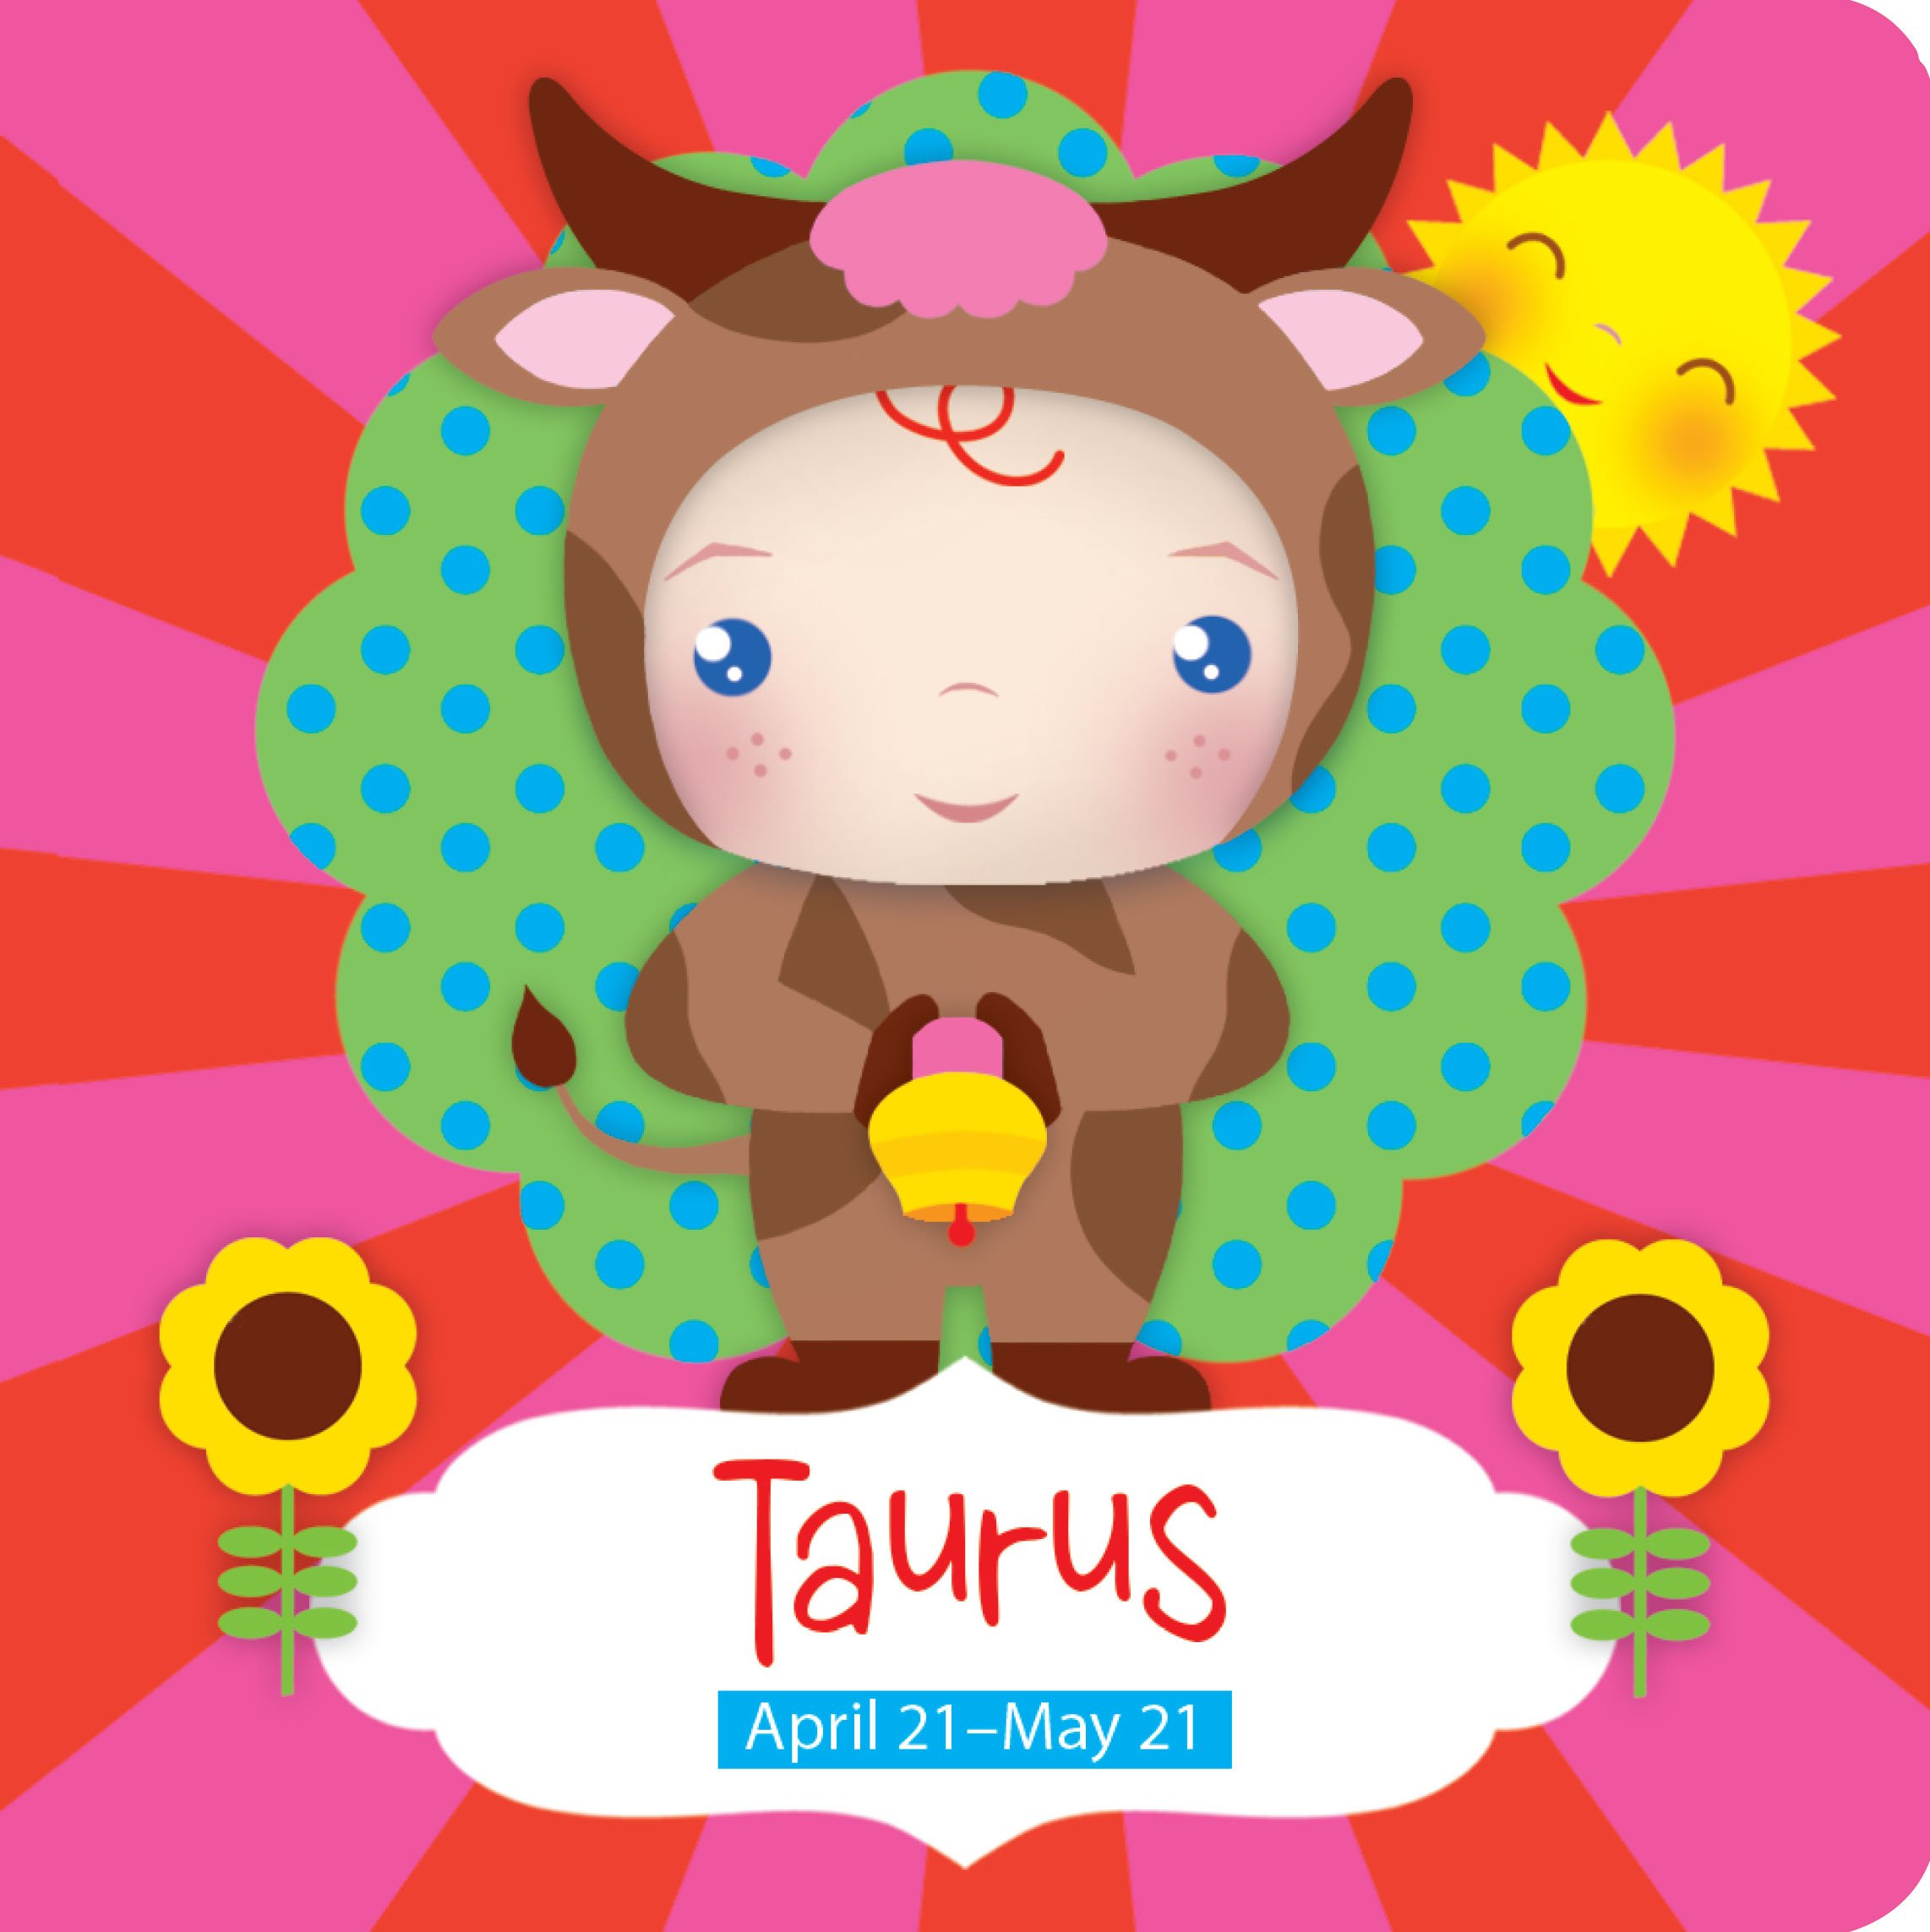 Buy Taurus April 21 May 21 Zodiac Sign Books Book Online At Low Prices In India Taurus April 21 May 21 Zodiac Sign Books Reviews Ratings Amazon In